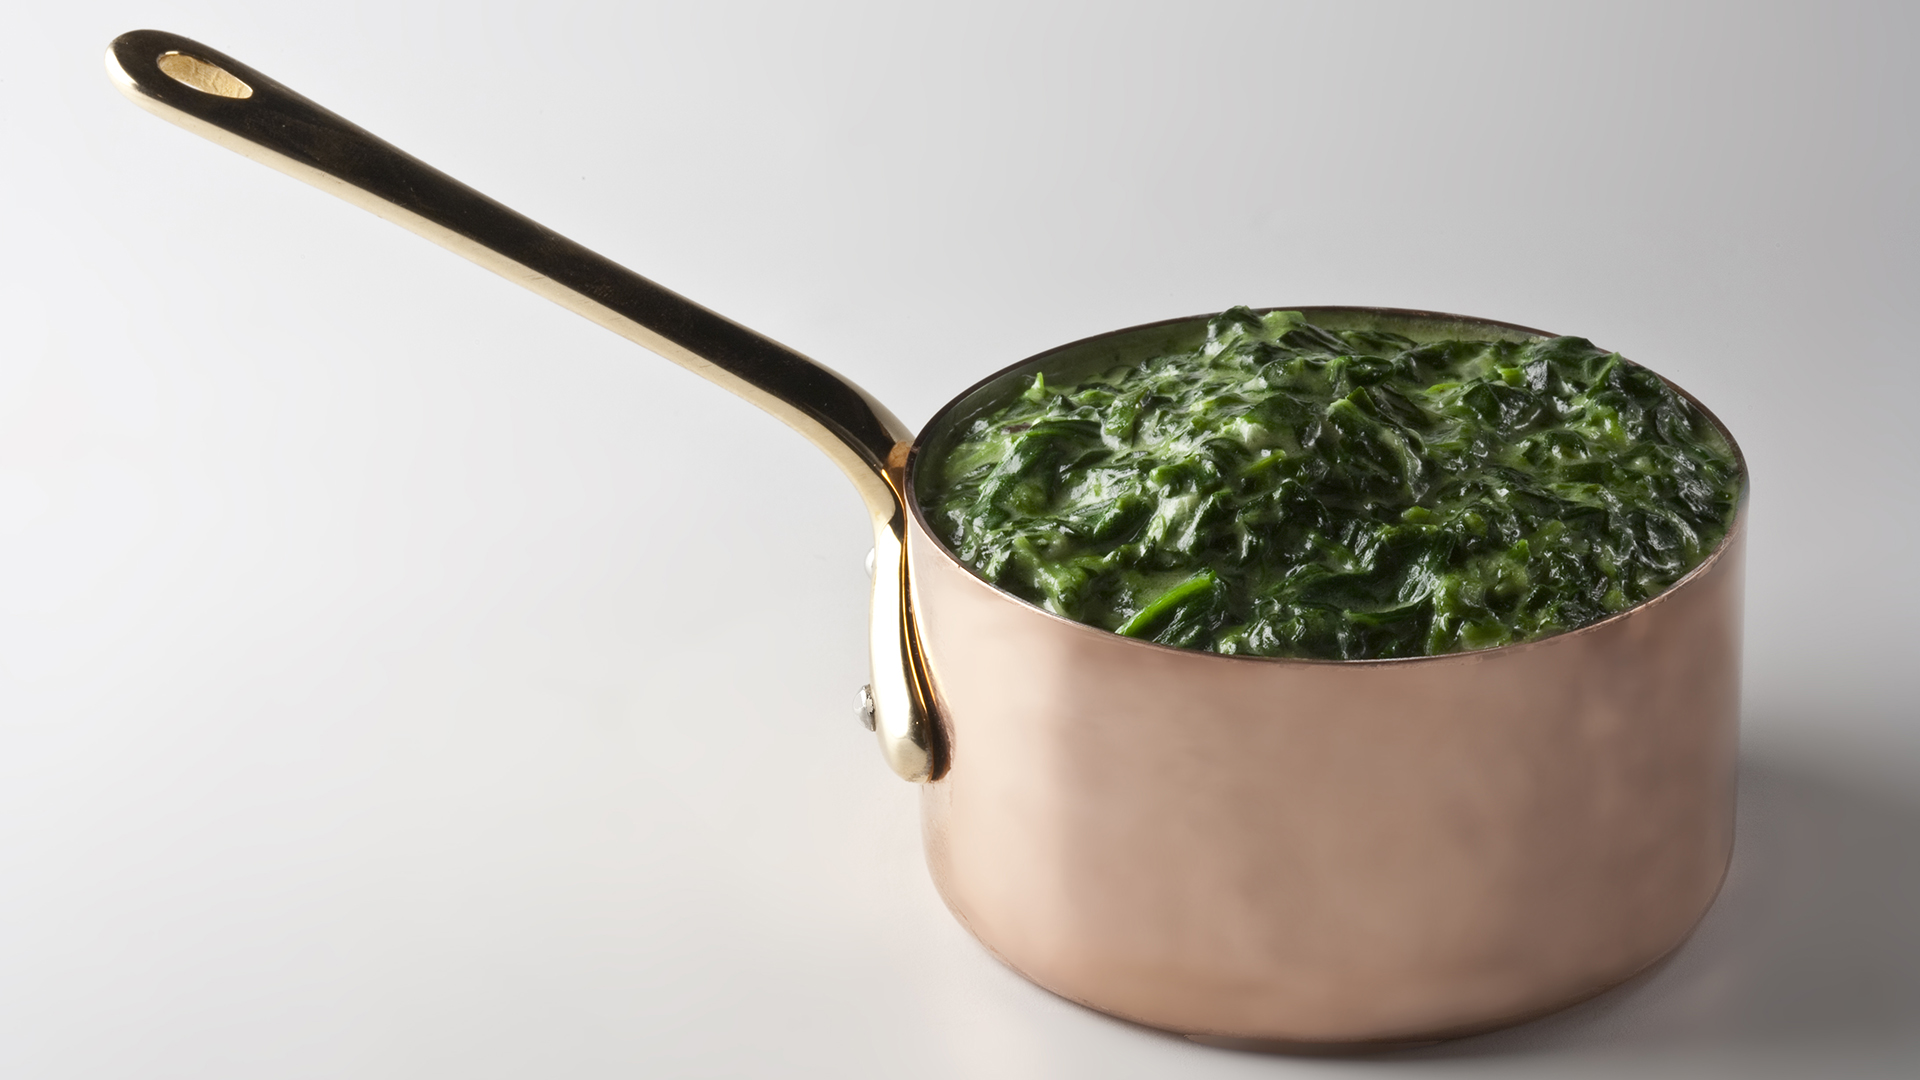 The ultimate creamed spinach recipe comes from Strip House in NYC